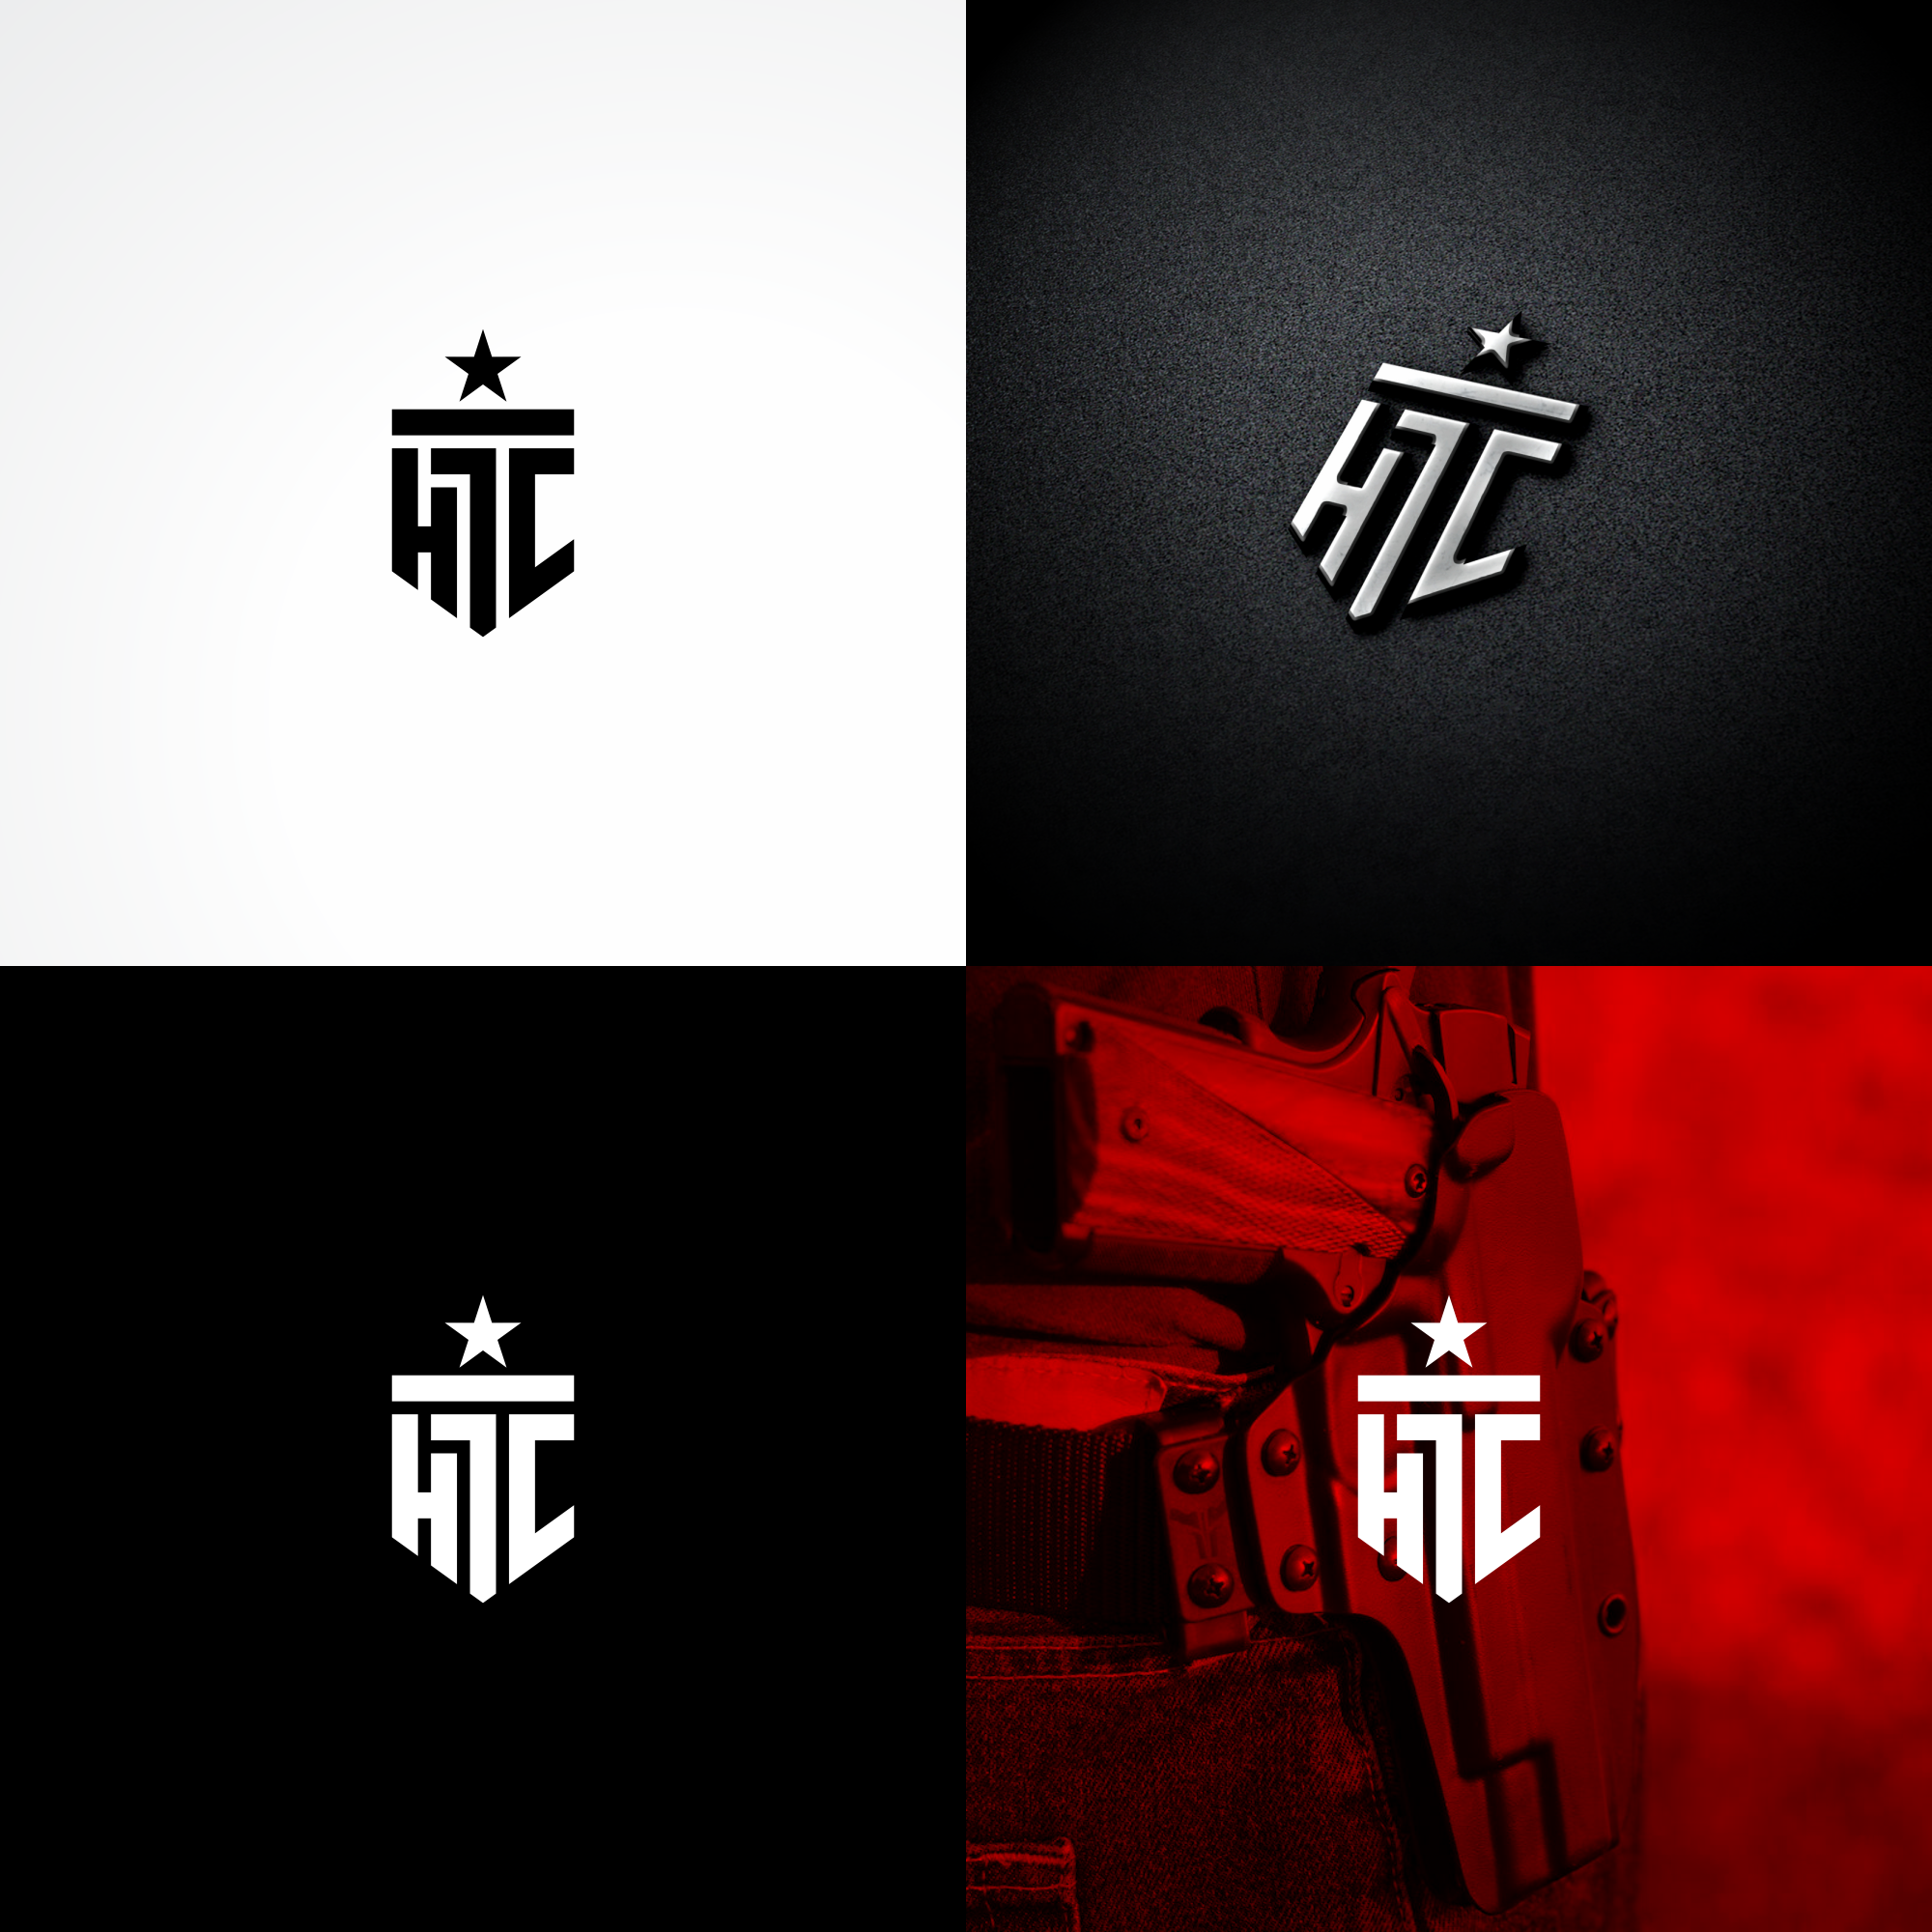 Need a new logo for the defense industry